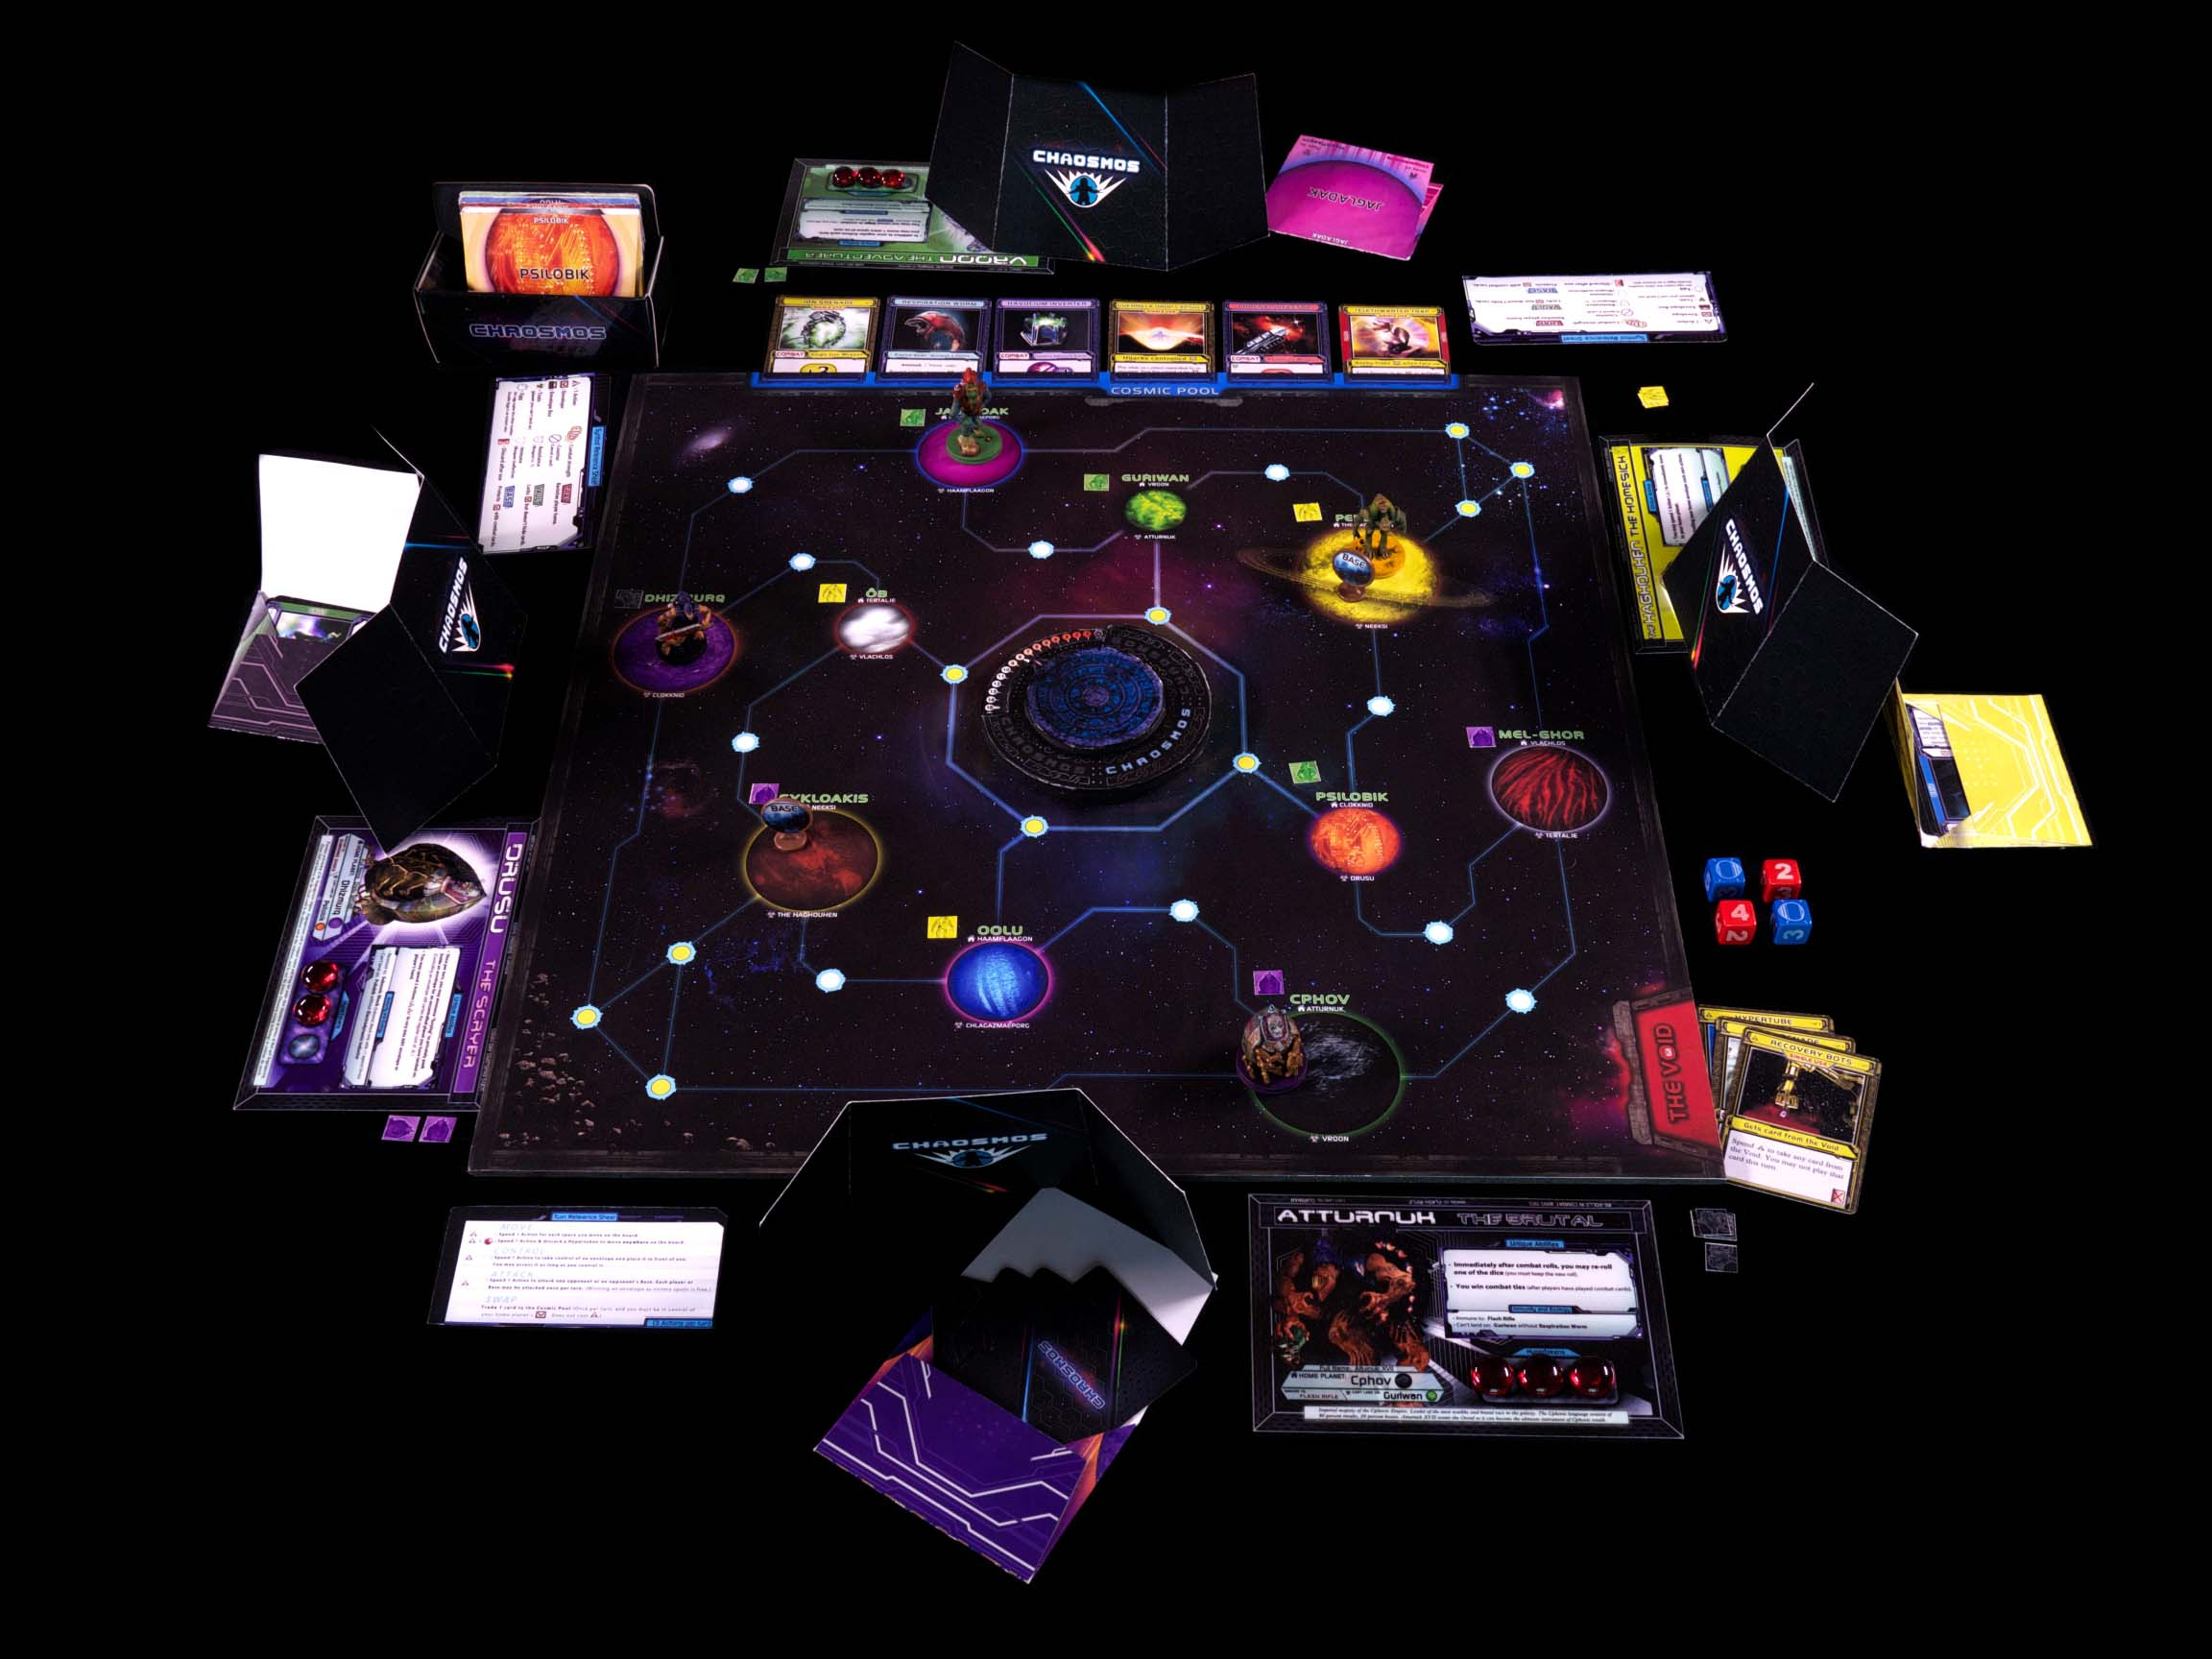 Prototype your next board game with 3D printing